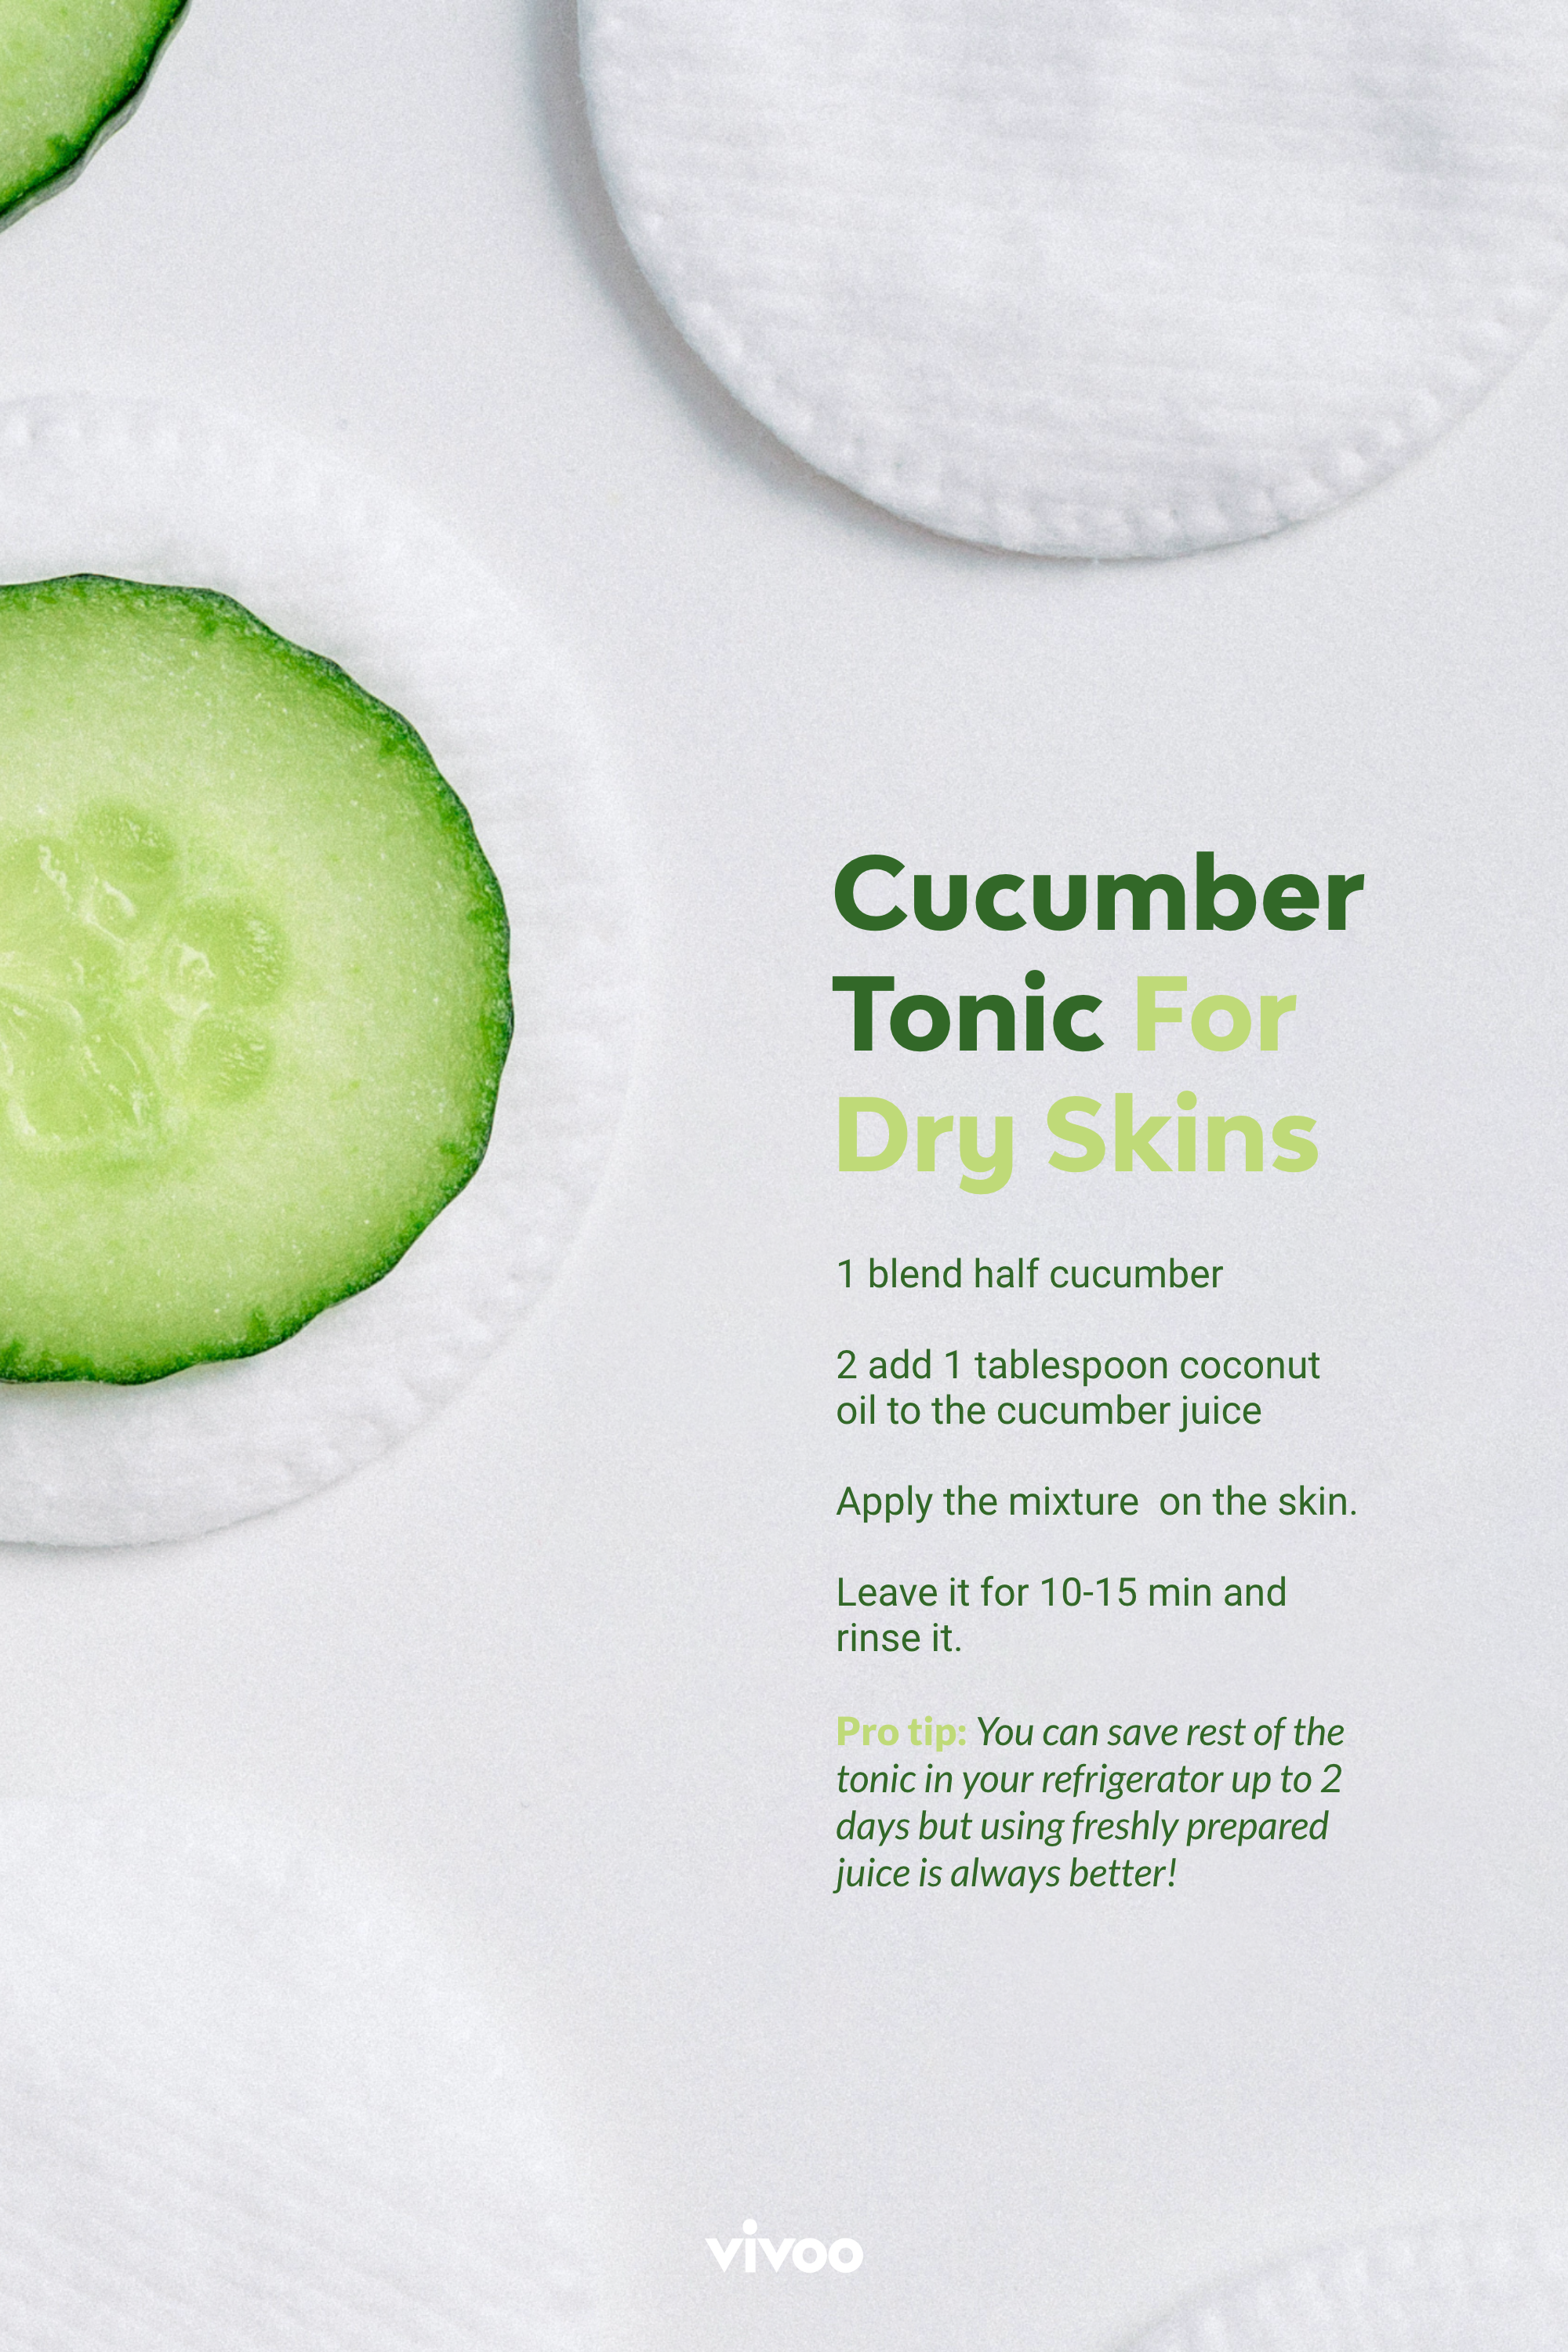 Cucumber Tonic For Dry Skins Personalized Nutrition Nutrition Advice Acidic Foods